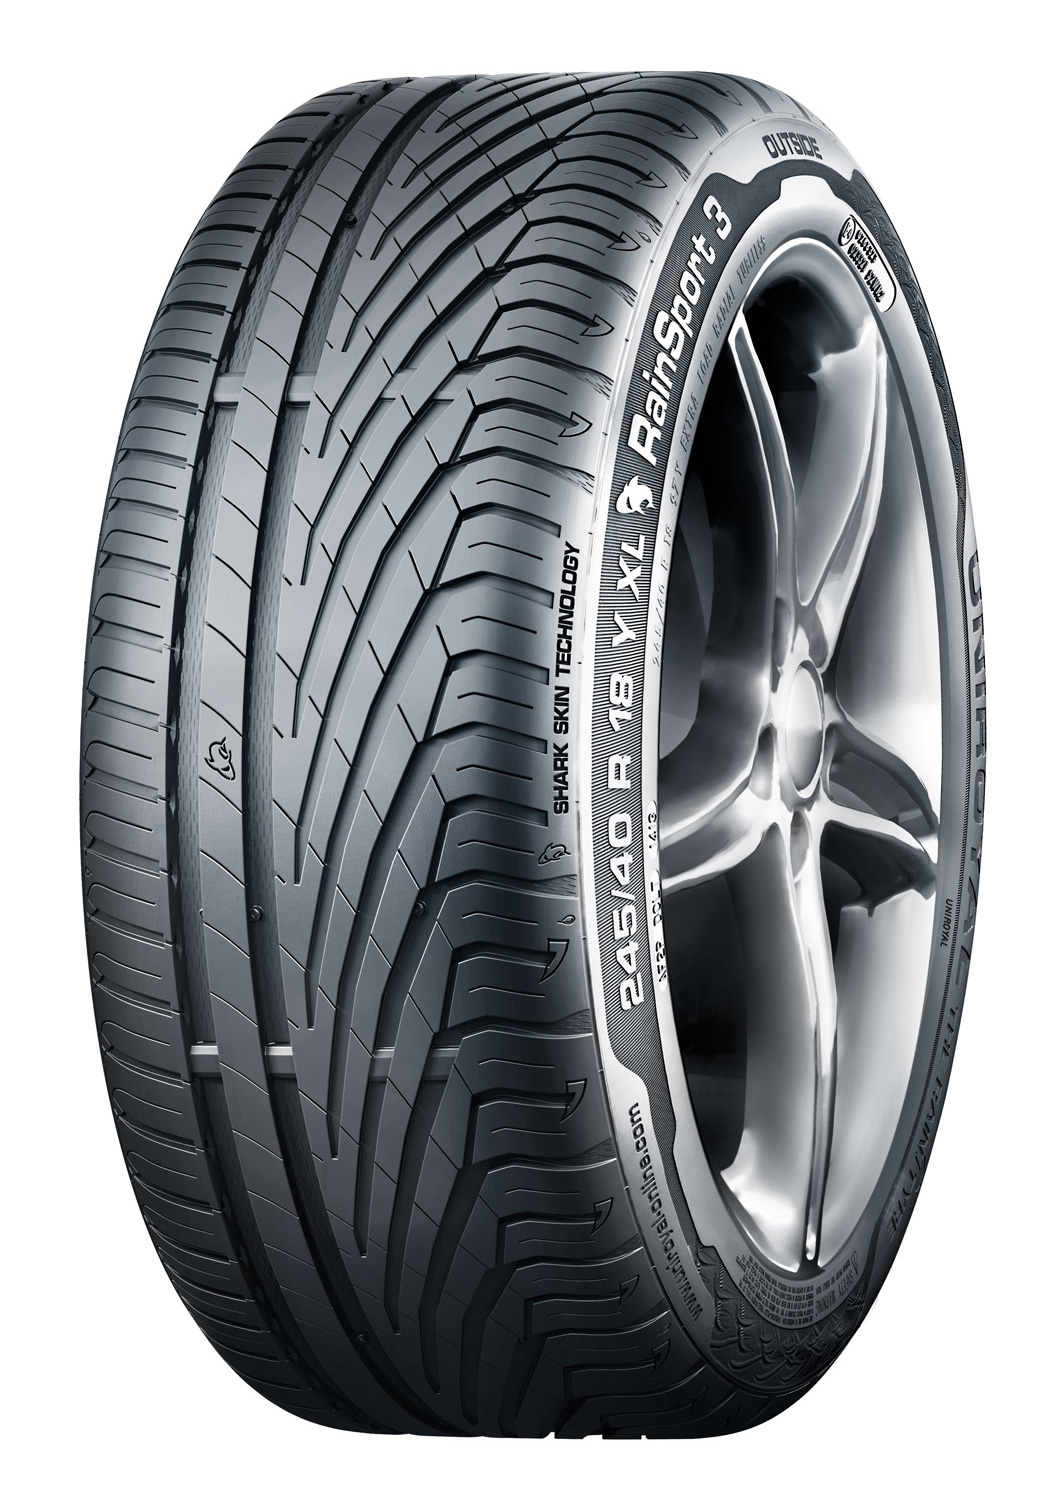 Buy cheap Uniroyal RainSport 3 SUV tyres from your local Setyres